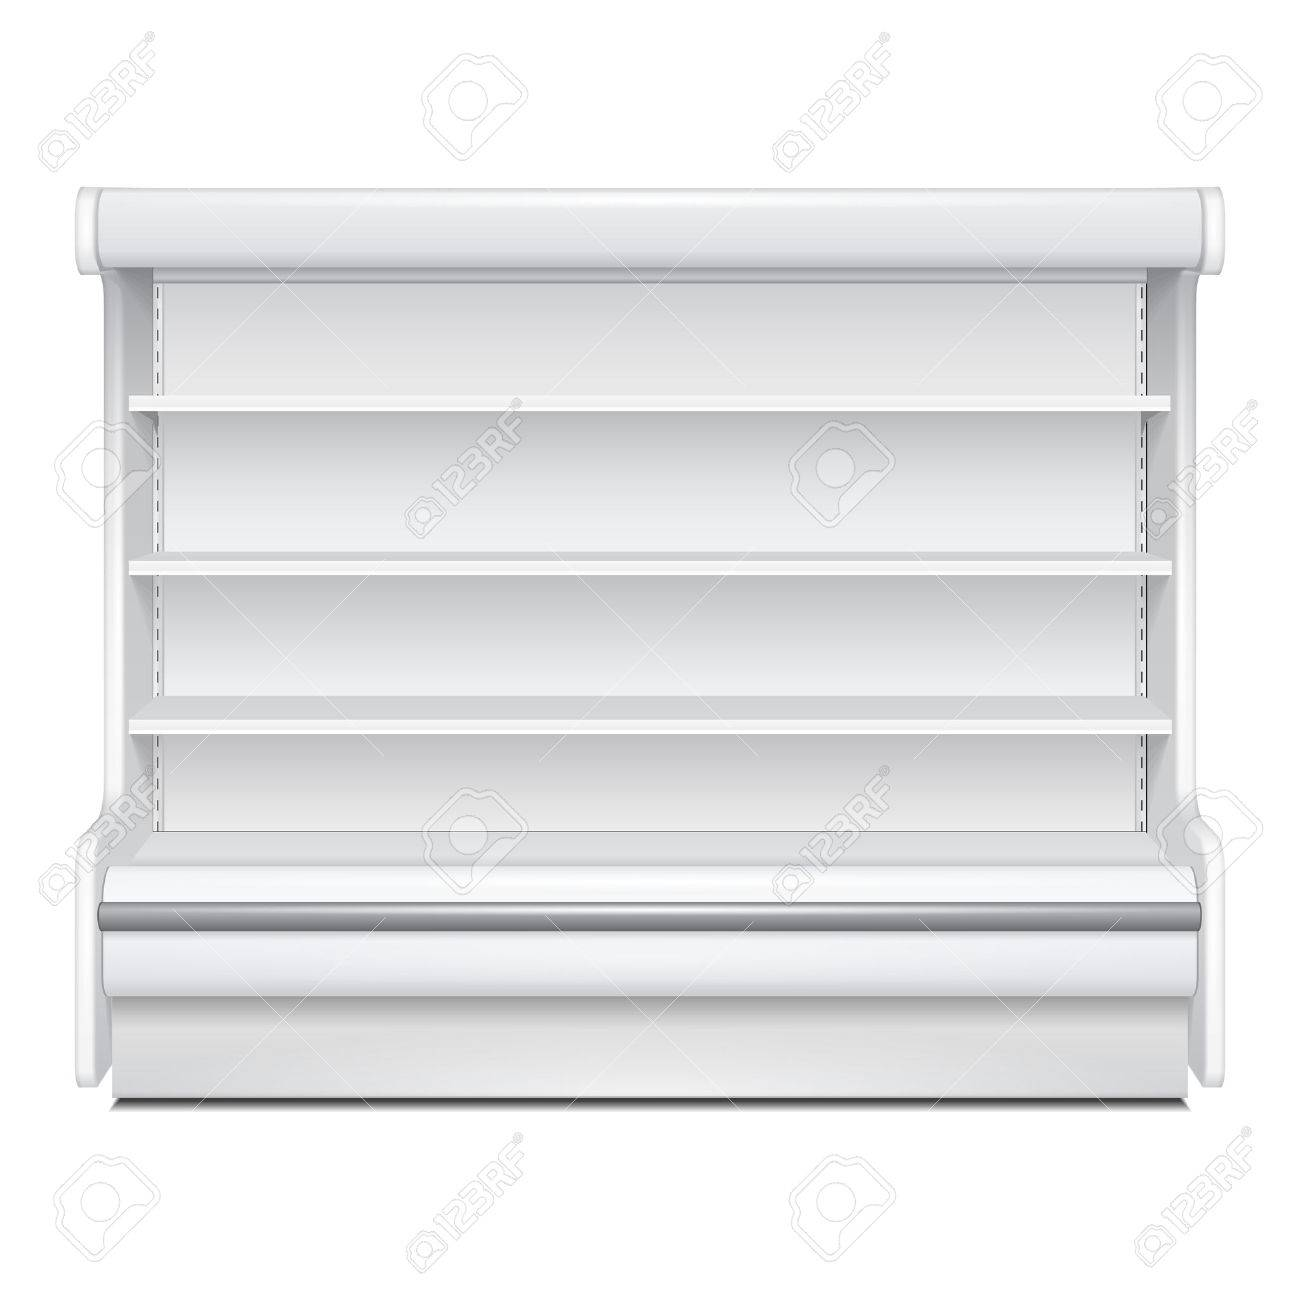 Cooled Regal Rack Refrigerator Wall Cabinet Blank Empty Showcase Displays. Retail Shelves. 3D Products On White Background Isolated. Mock Up Ready For Your Design. Product Packing. Vector EPS10 - 59206365